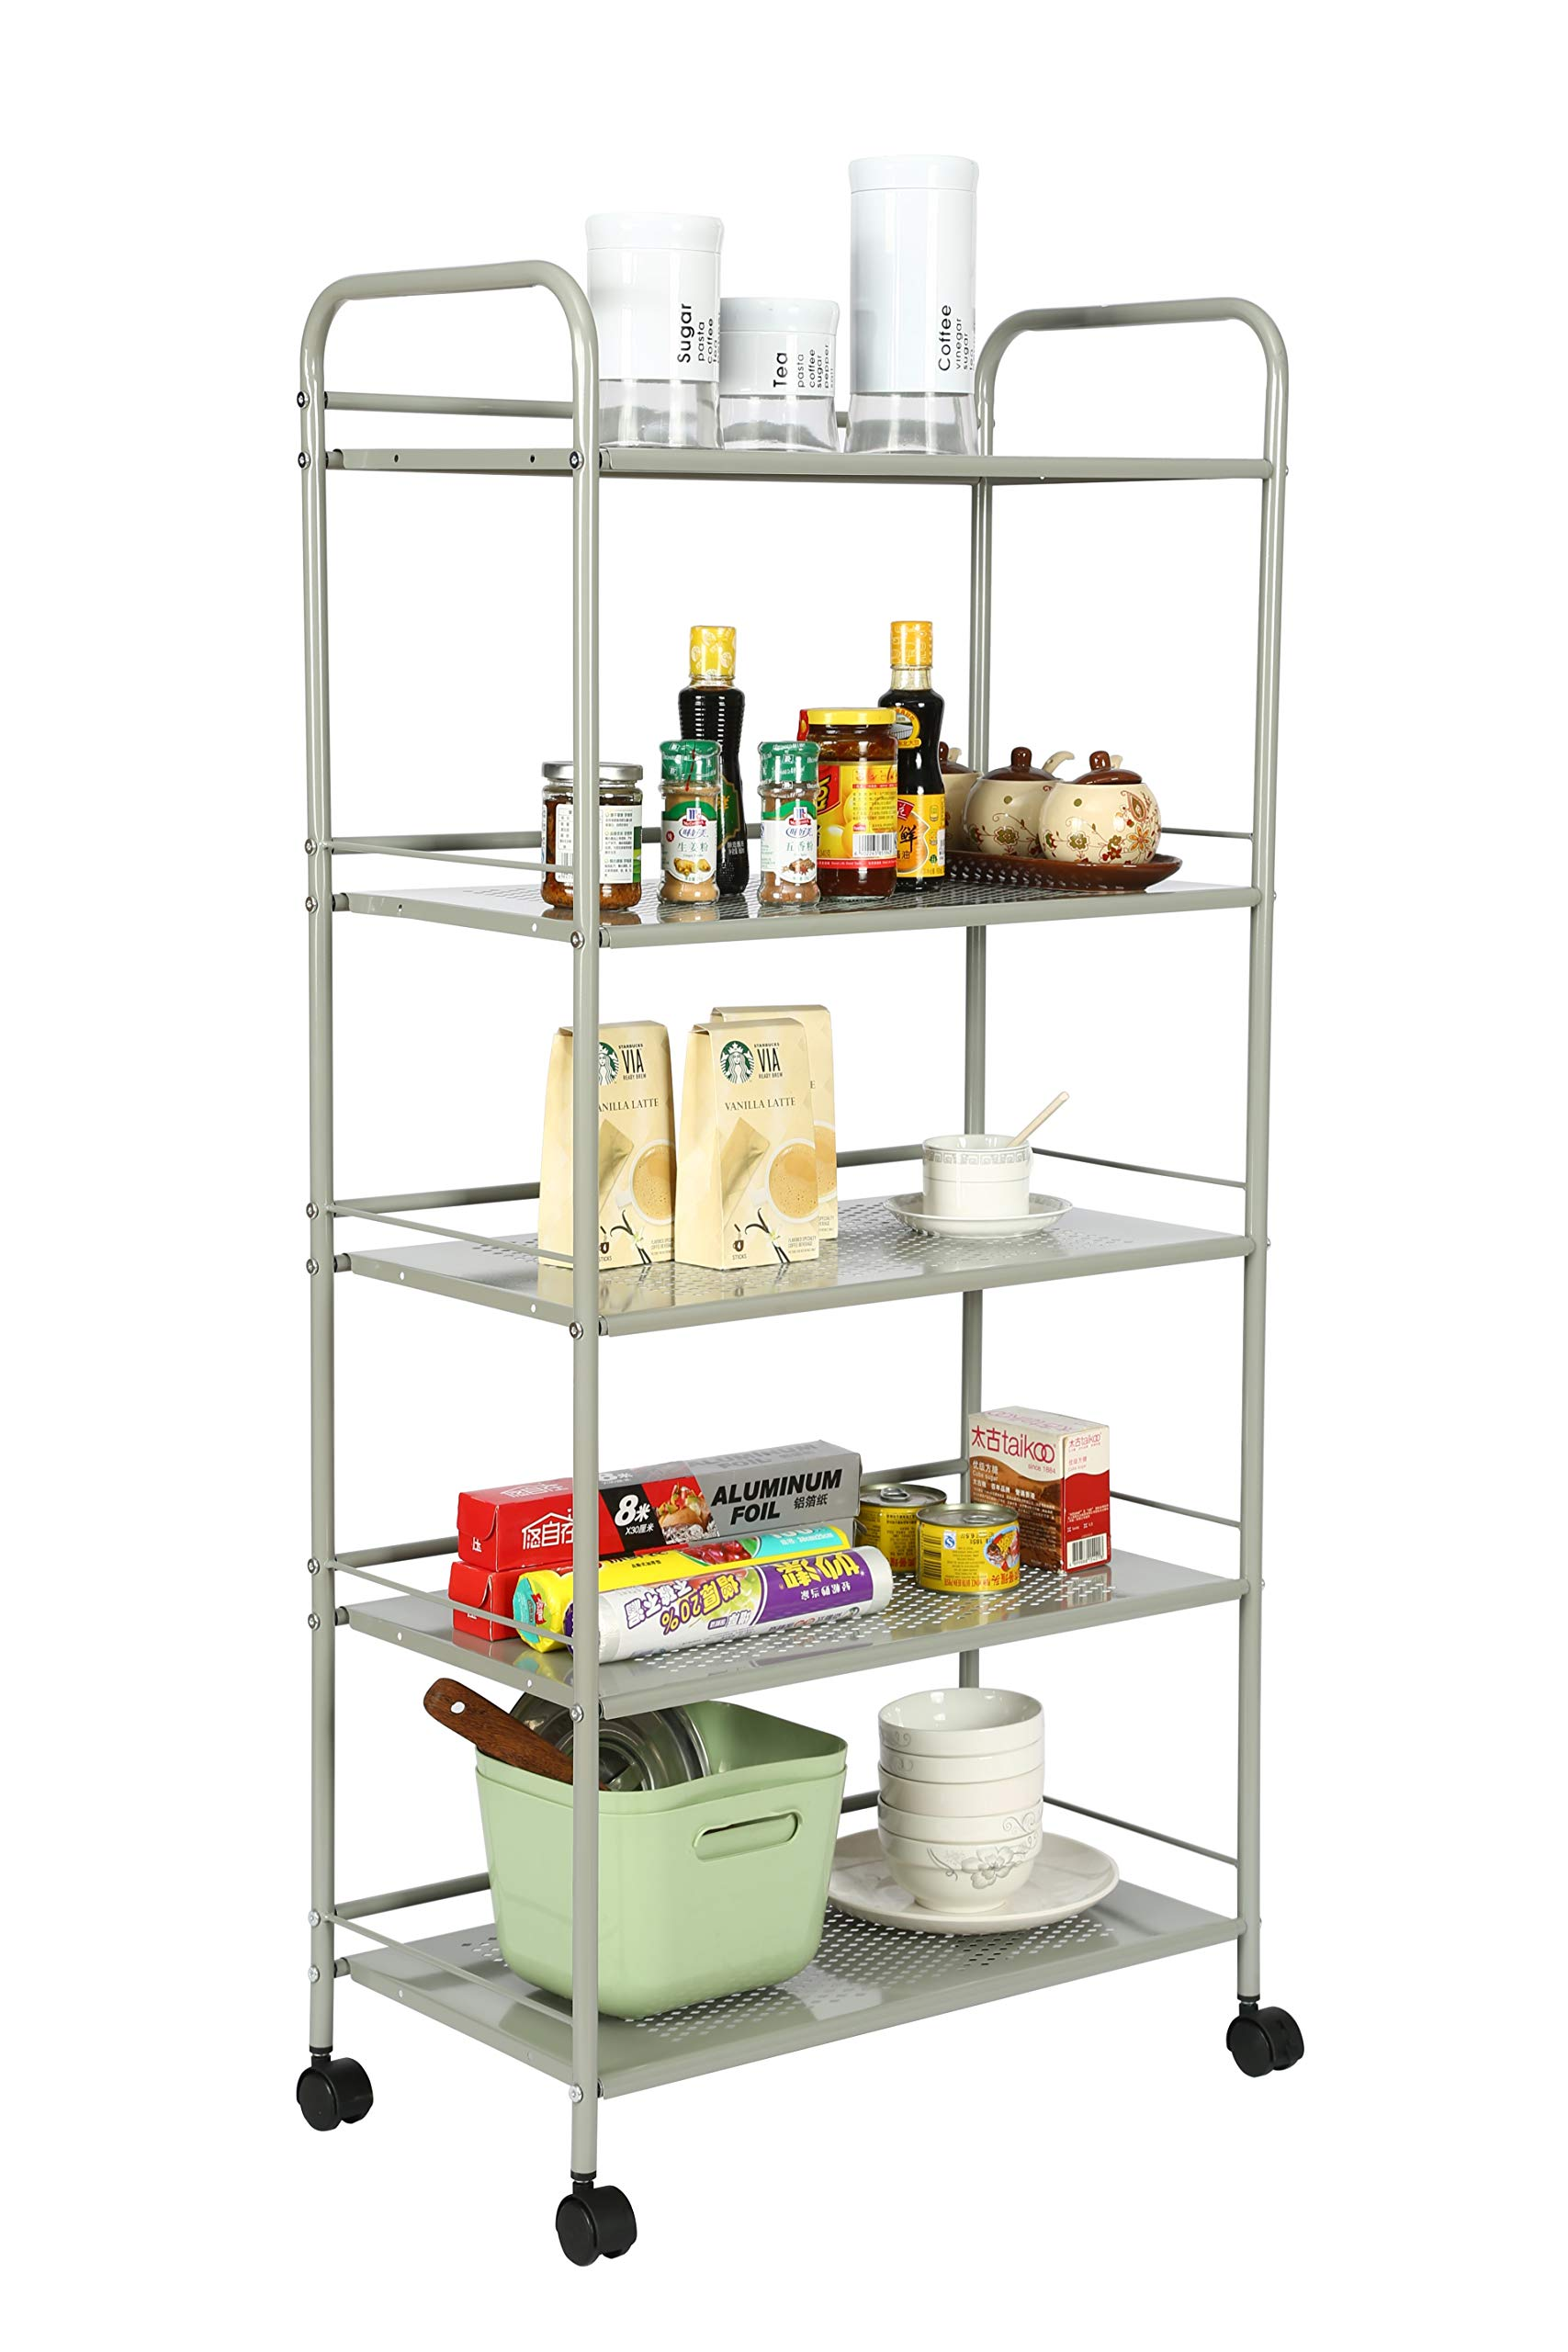 Homebi Kitchen Trolley Rolling Cart Metal Storage Rack Shelving Units for Cooking Utensils and Food Storage with Wheels (5-Tier)